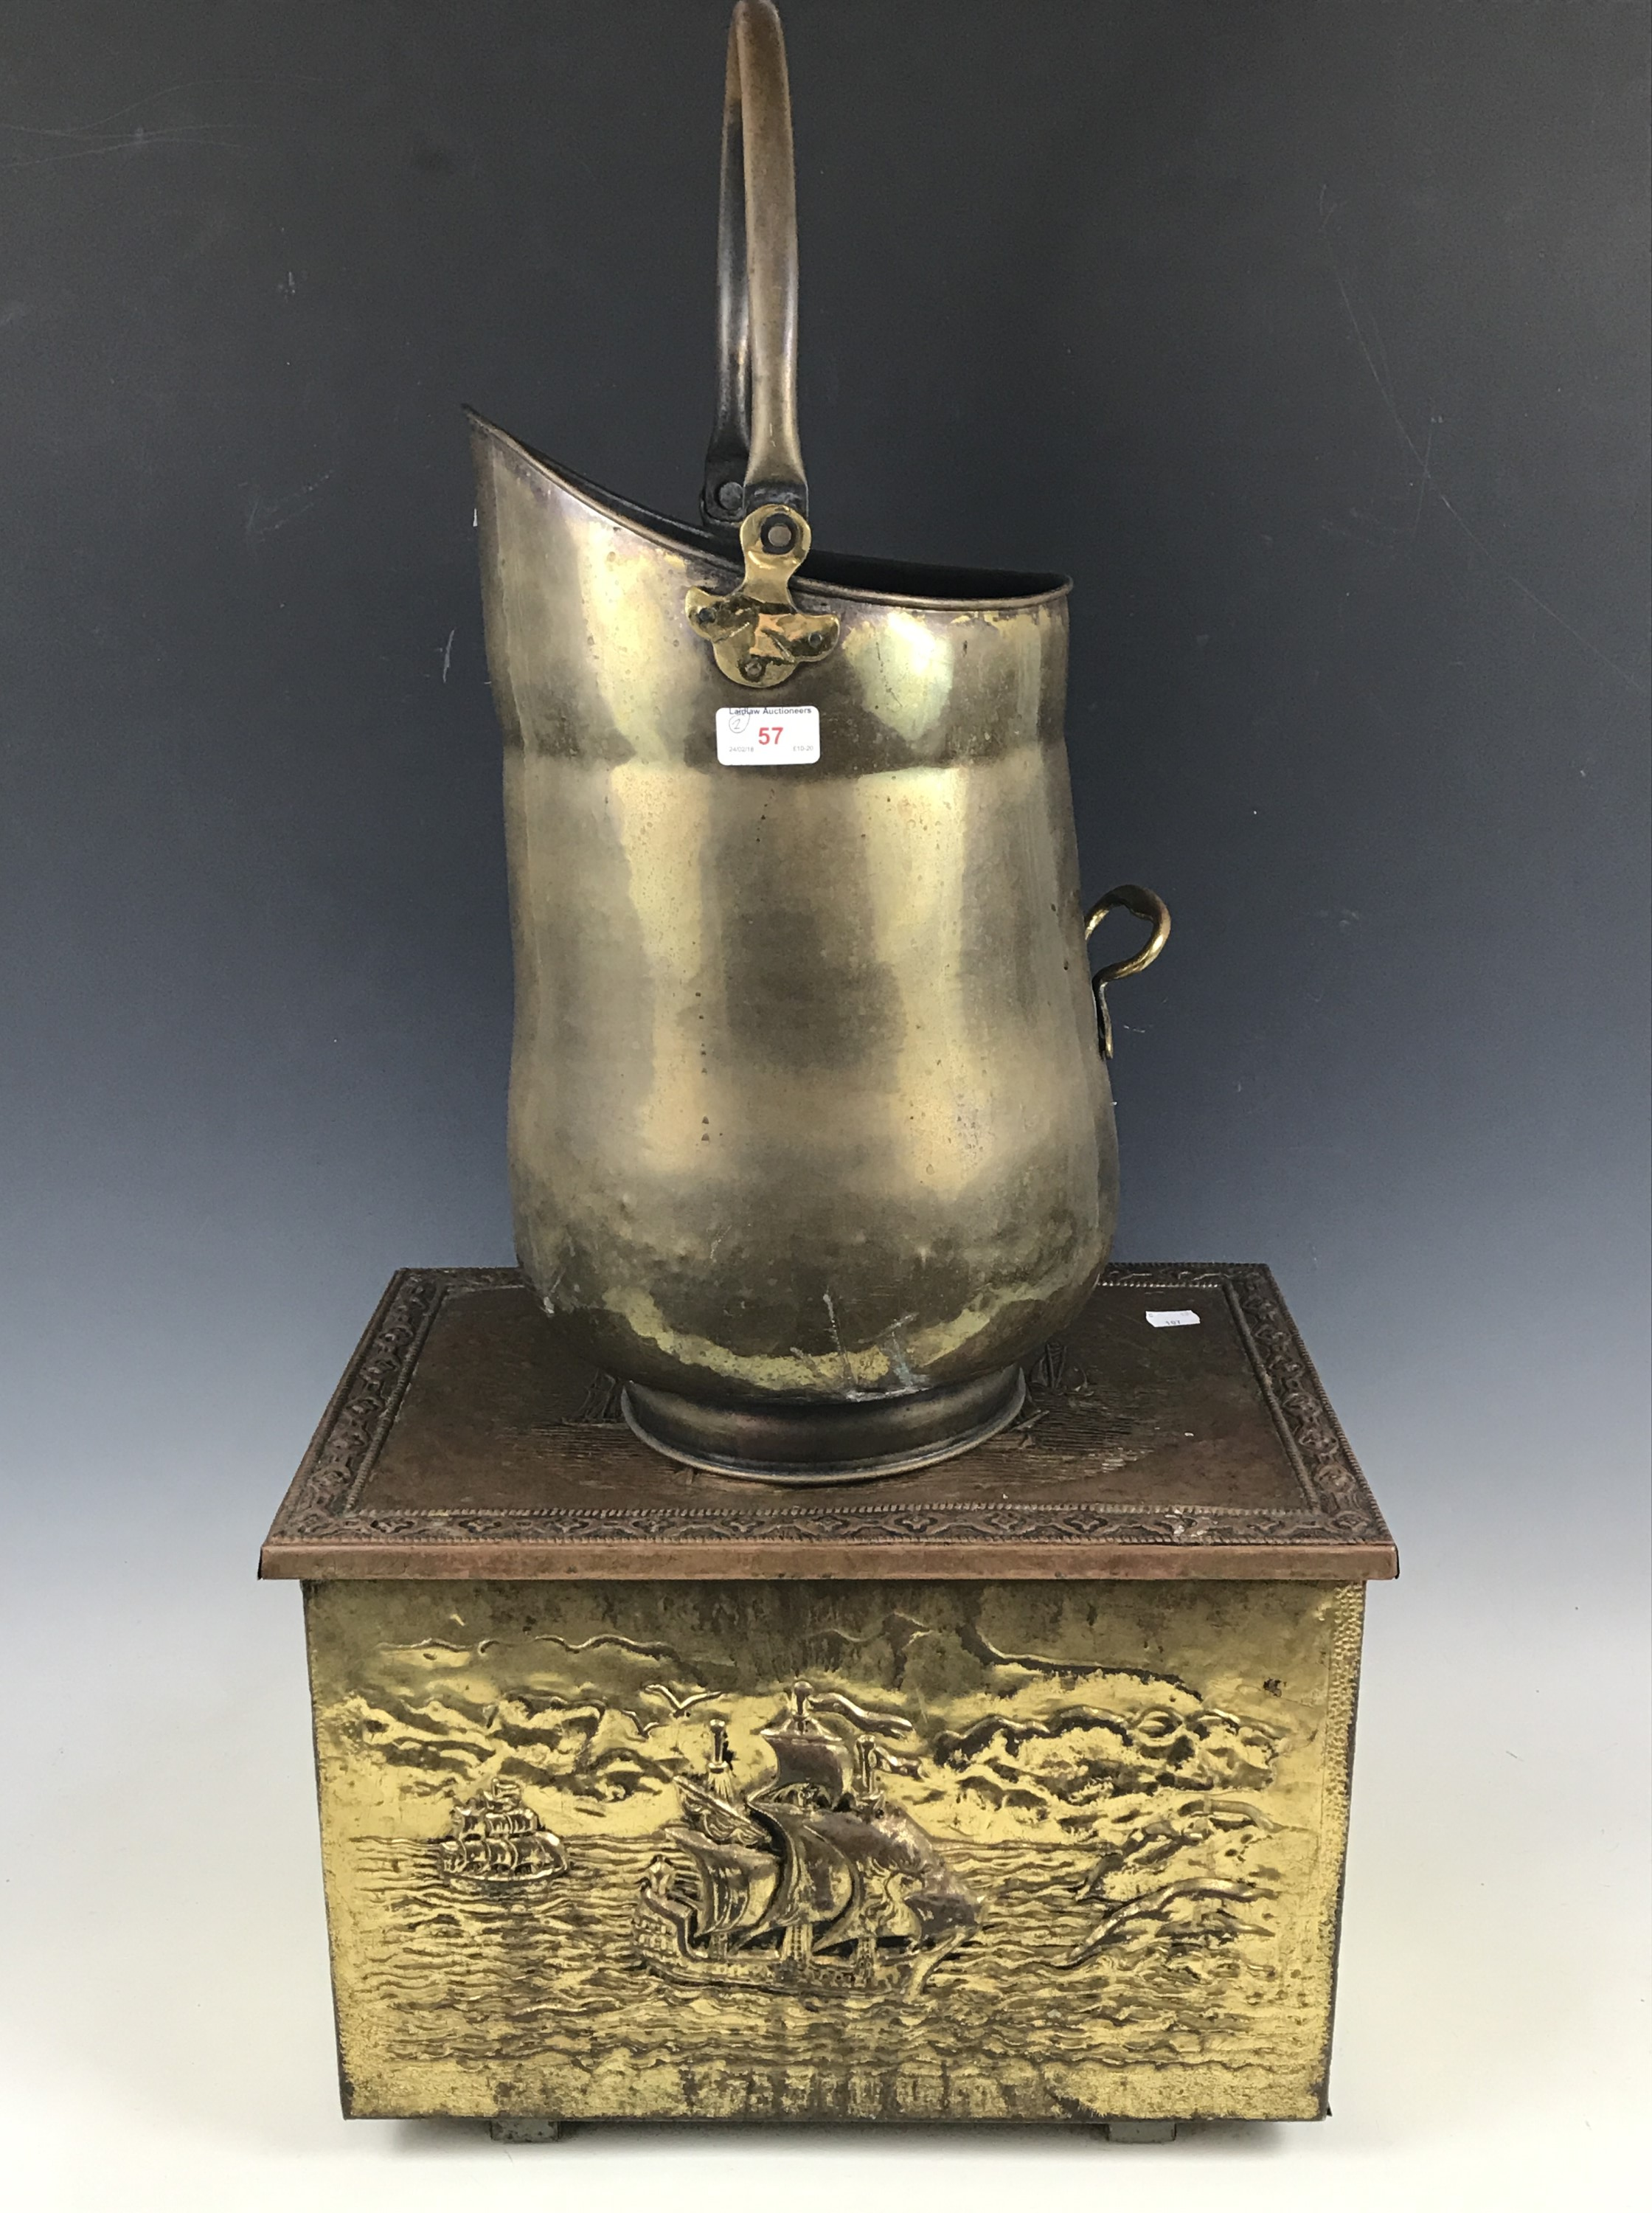 Lot 57 - A brass coal scuttle together with a brass coal box